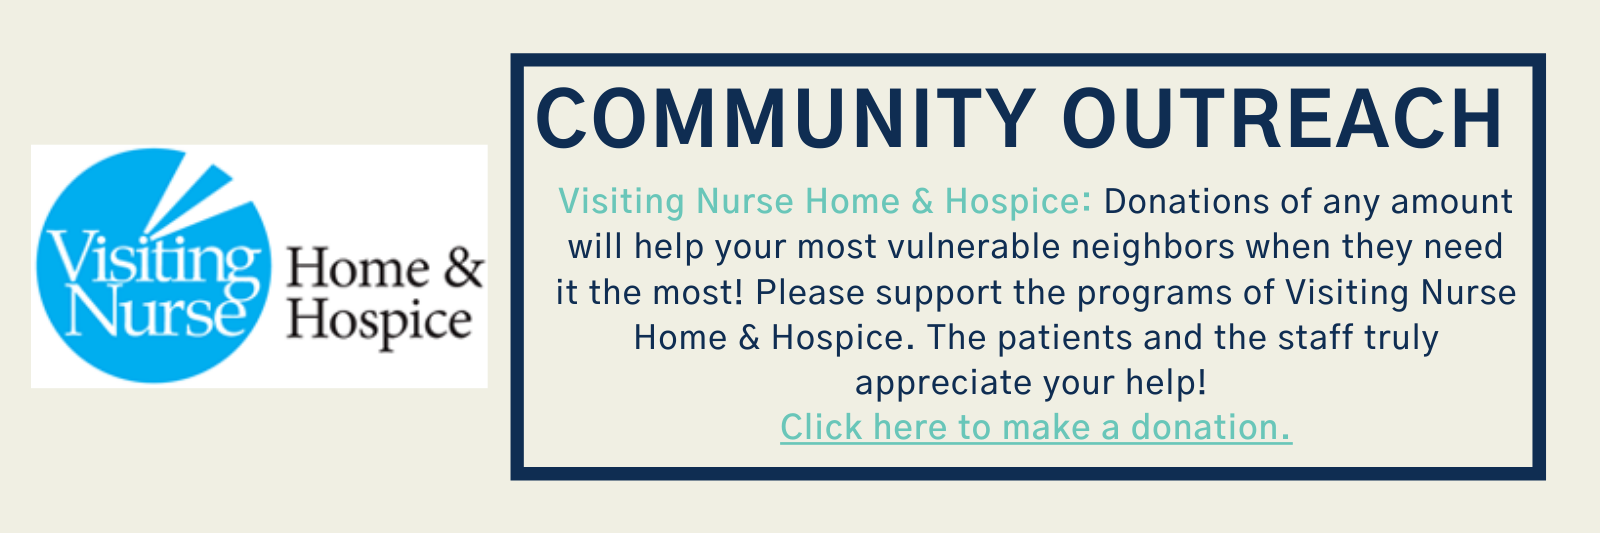 Community-Outreach---Visiting-Nurses-and-Home-Hospice.png